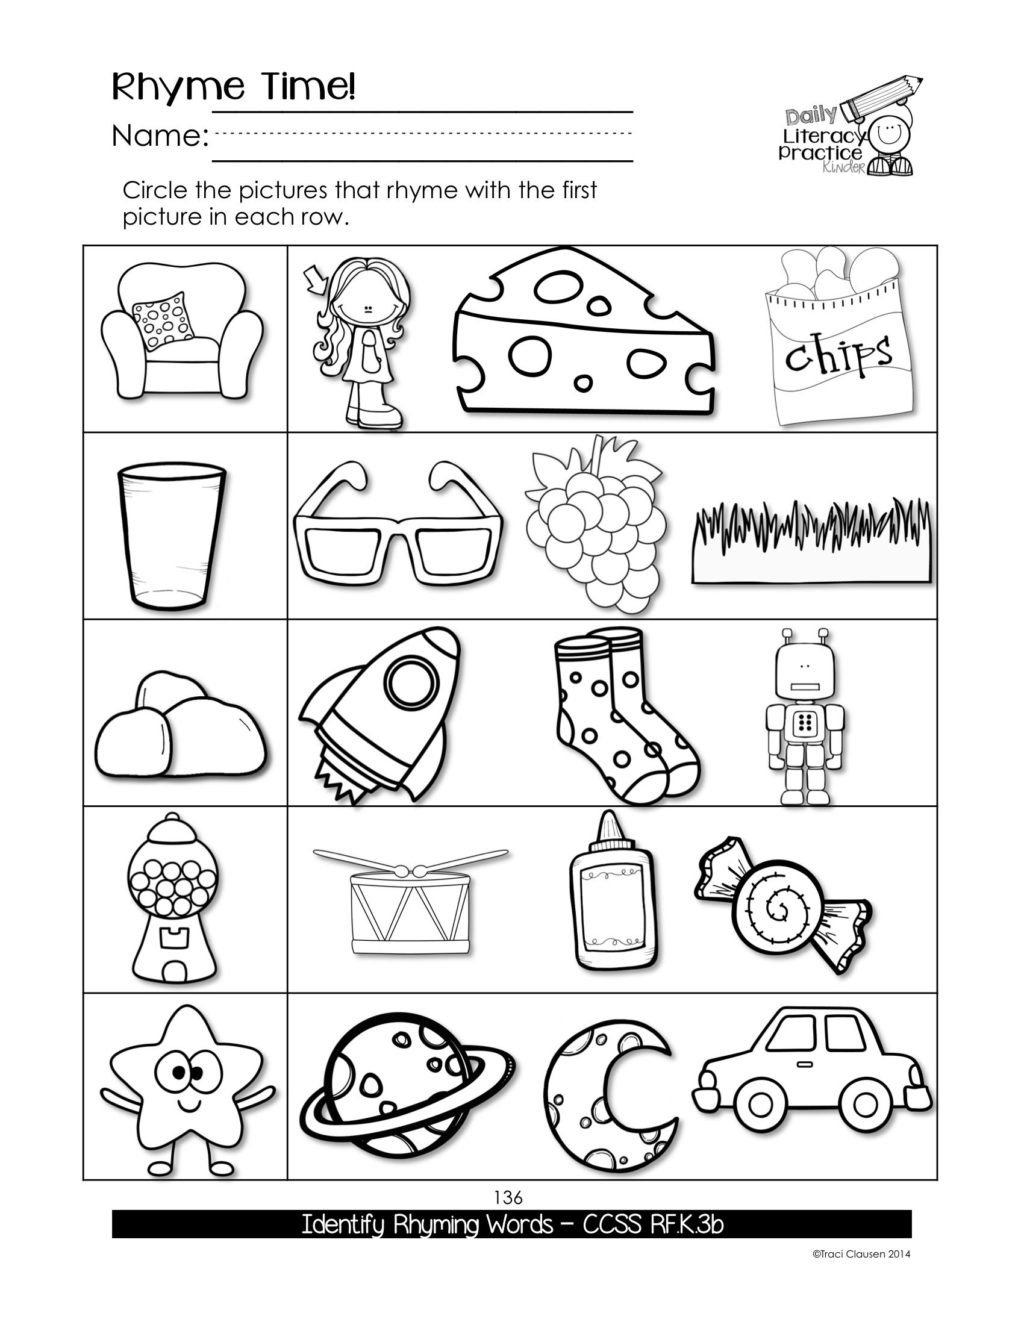 social stu s worksheets for kids free printable activity books tracing letter preschool worksheet vocabulary coloring time grade expressions word problems 6th math games secondary 1024x1325